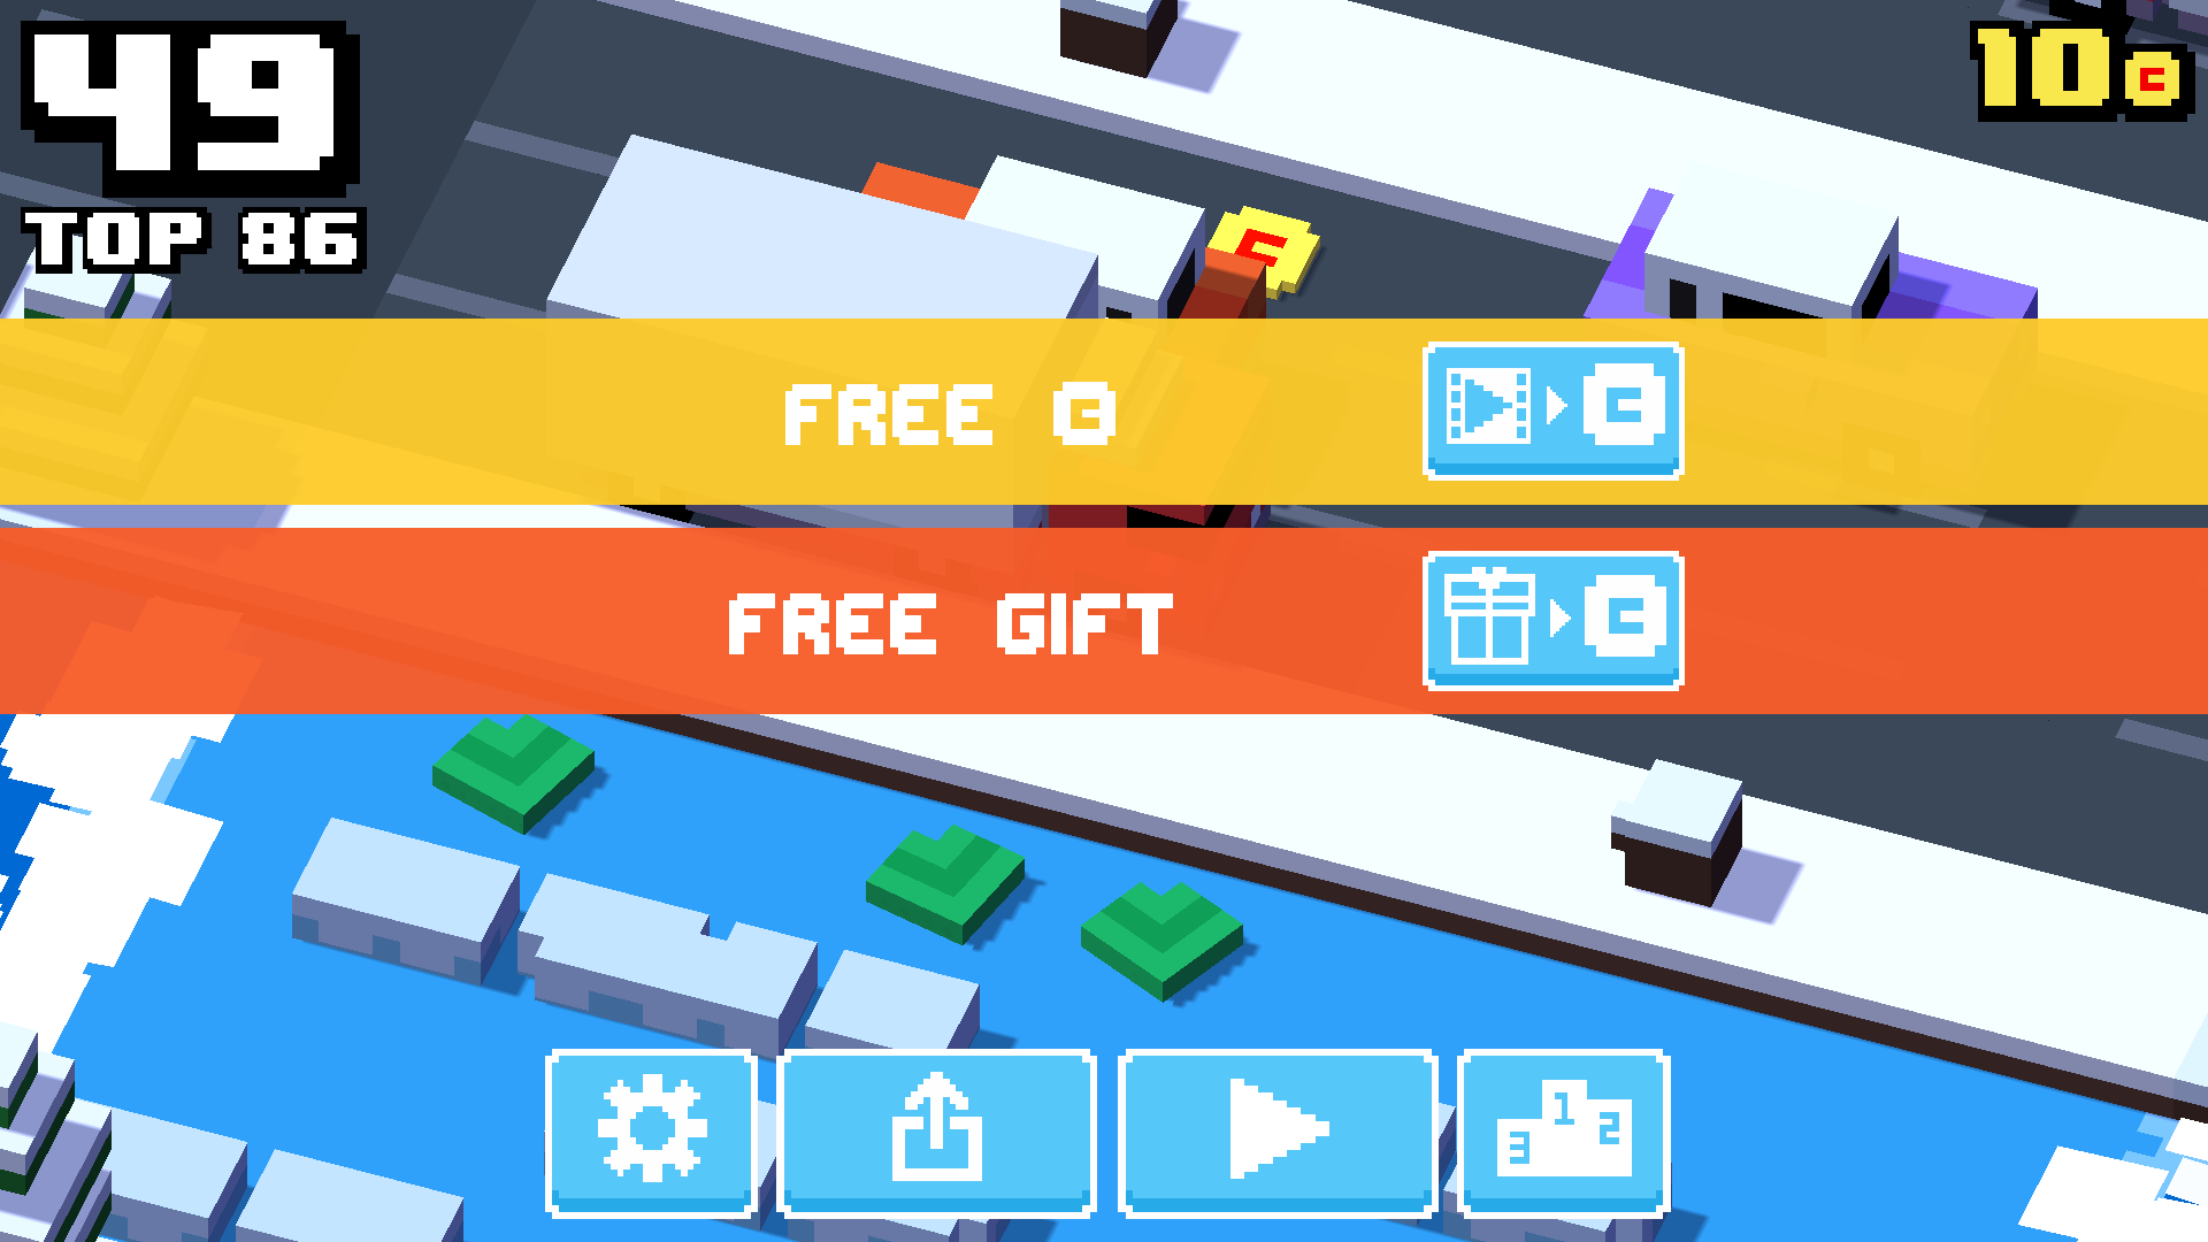 Crossy Road rewarded video ad integration